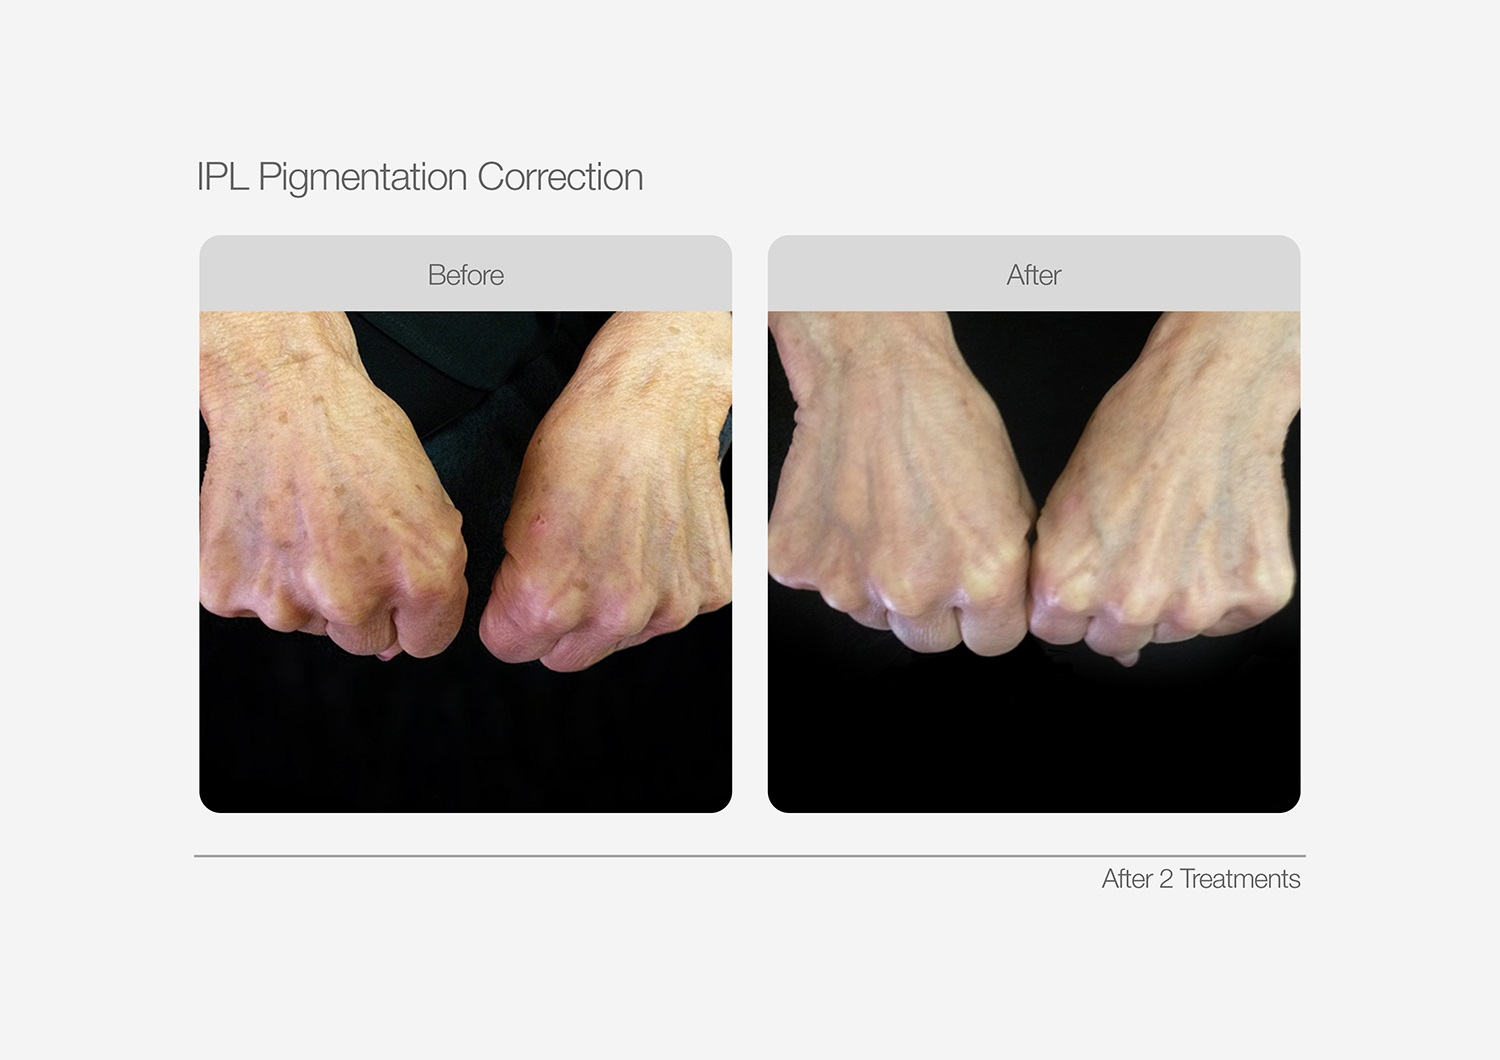 IPL-Pigmentation-Correction-Before-After-03